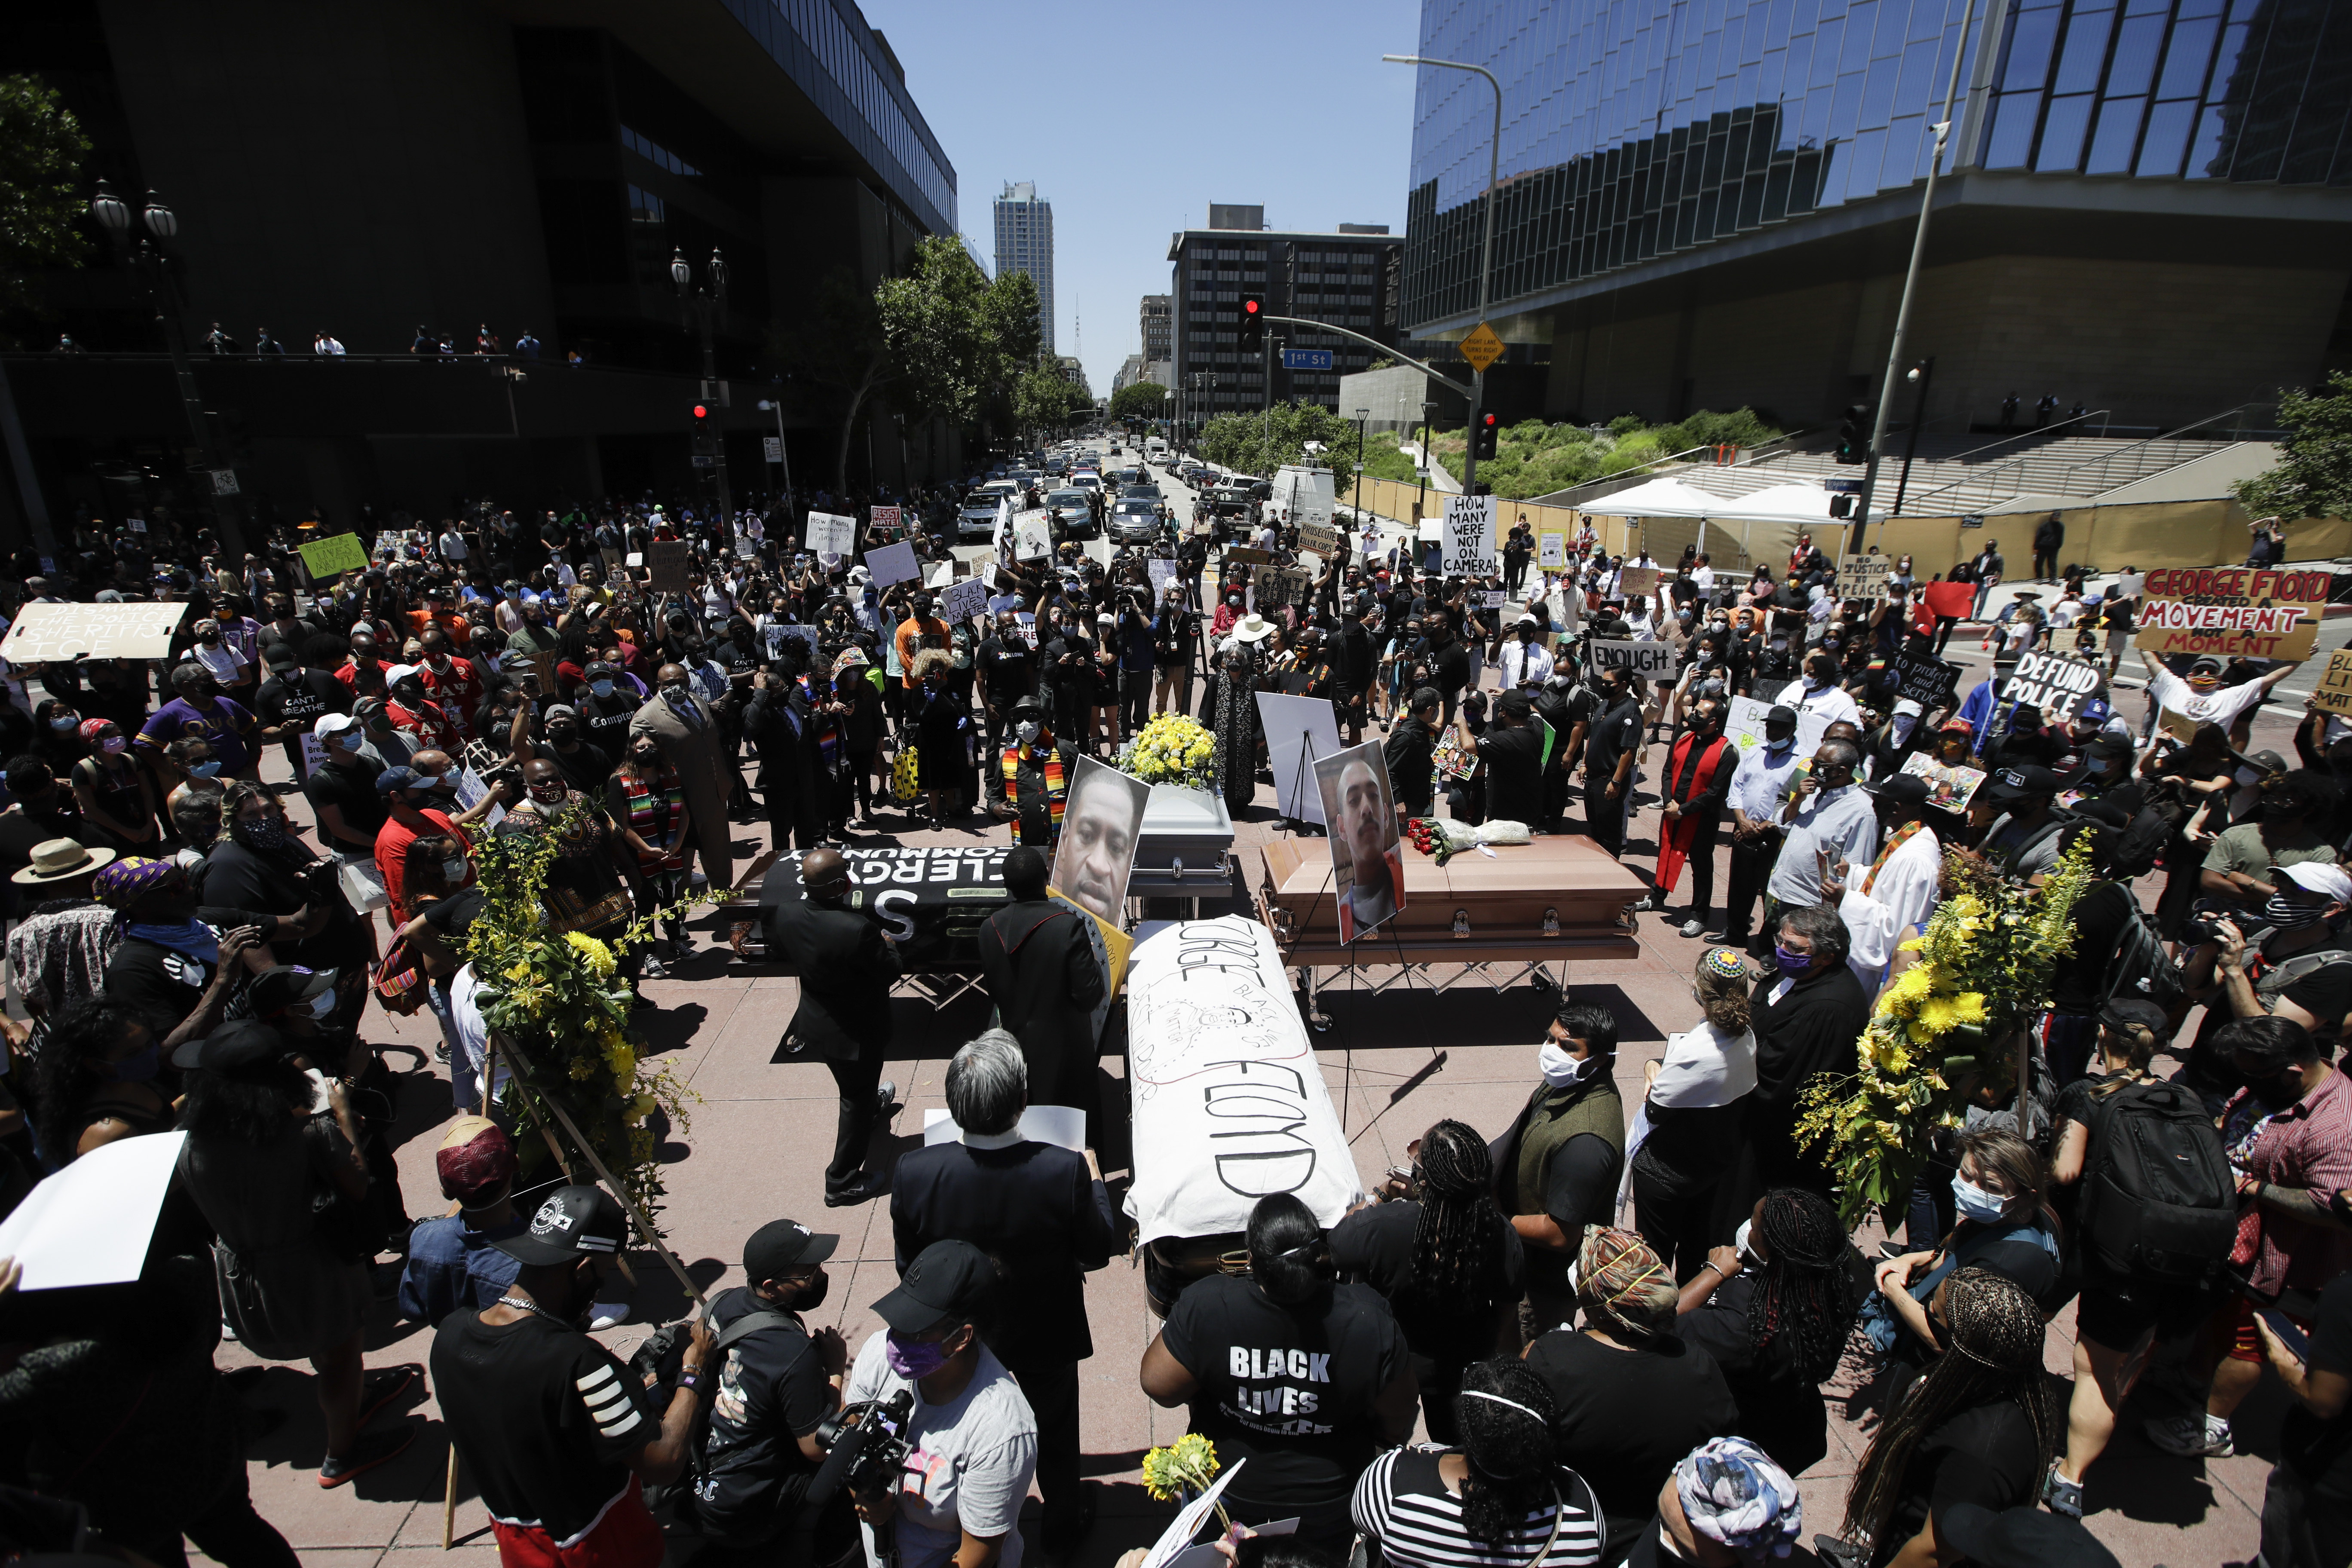 Caskets are laid out in the shape of a cross on June 8, in Los Angeles during a protest over the death of George Floyd.